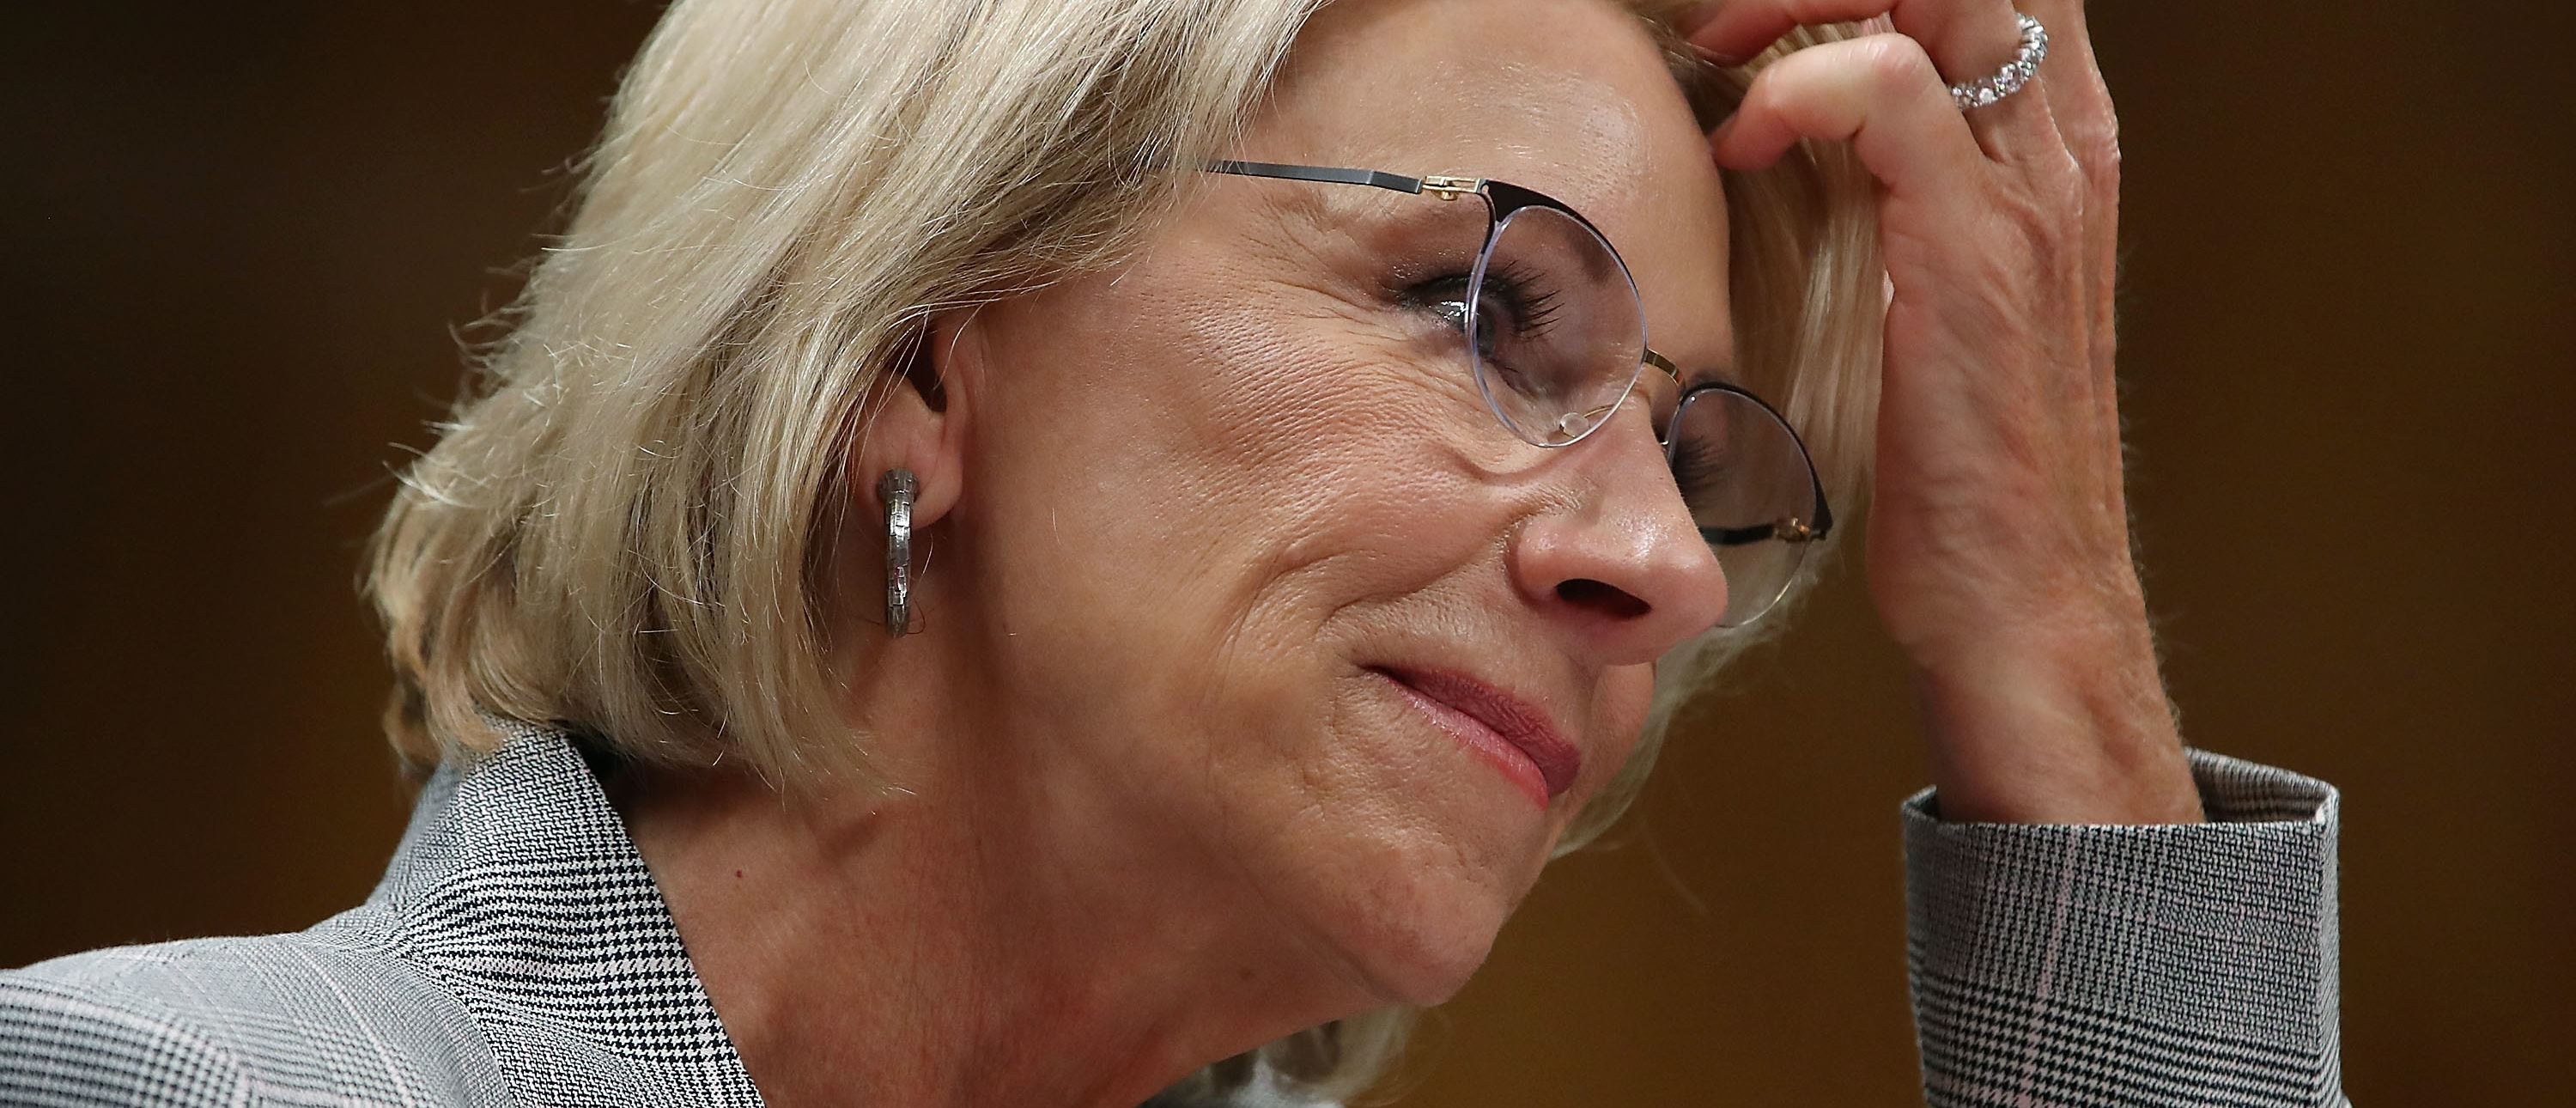 Education Secretary Betsy DeVos testifies during a Senate Appropriations Subcommittee hearing on Capitol Hill, June 5, 2018 in Washington, DC. The subcommittee heard testimony on the administrations FY2019 budget request for the Education Department. (Photo by Mark Wilson/Getty Images)